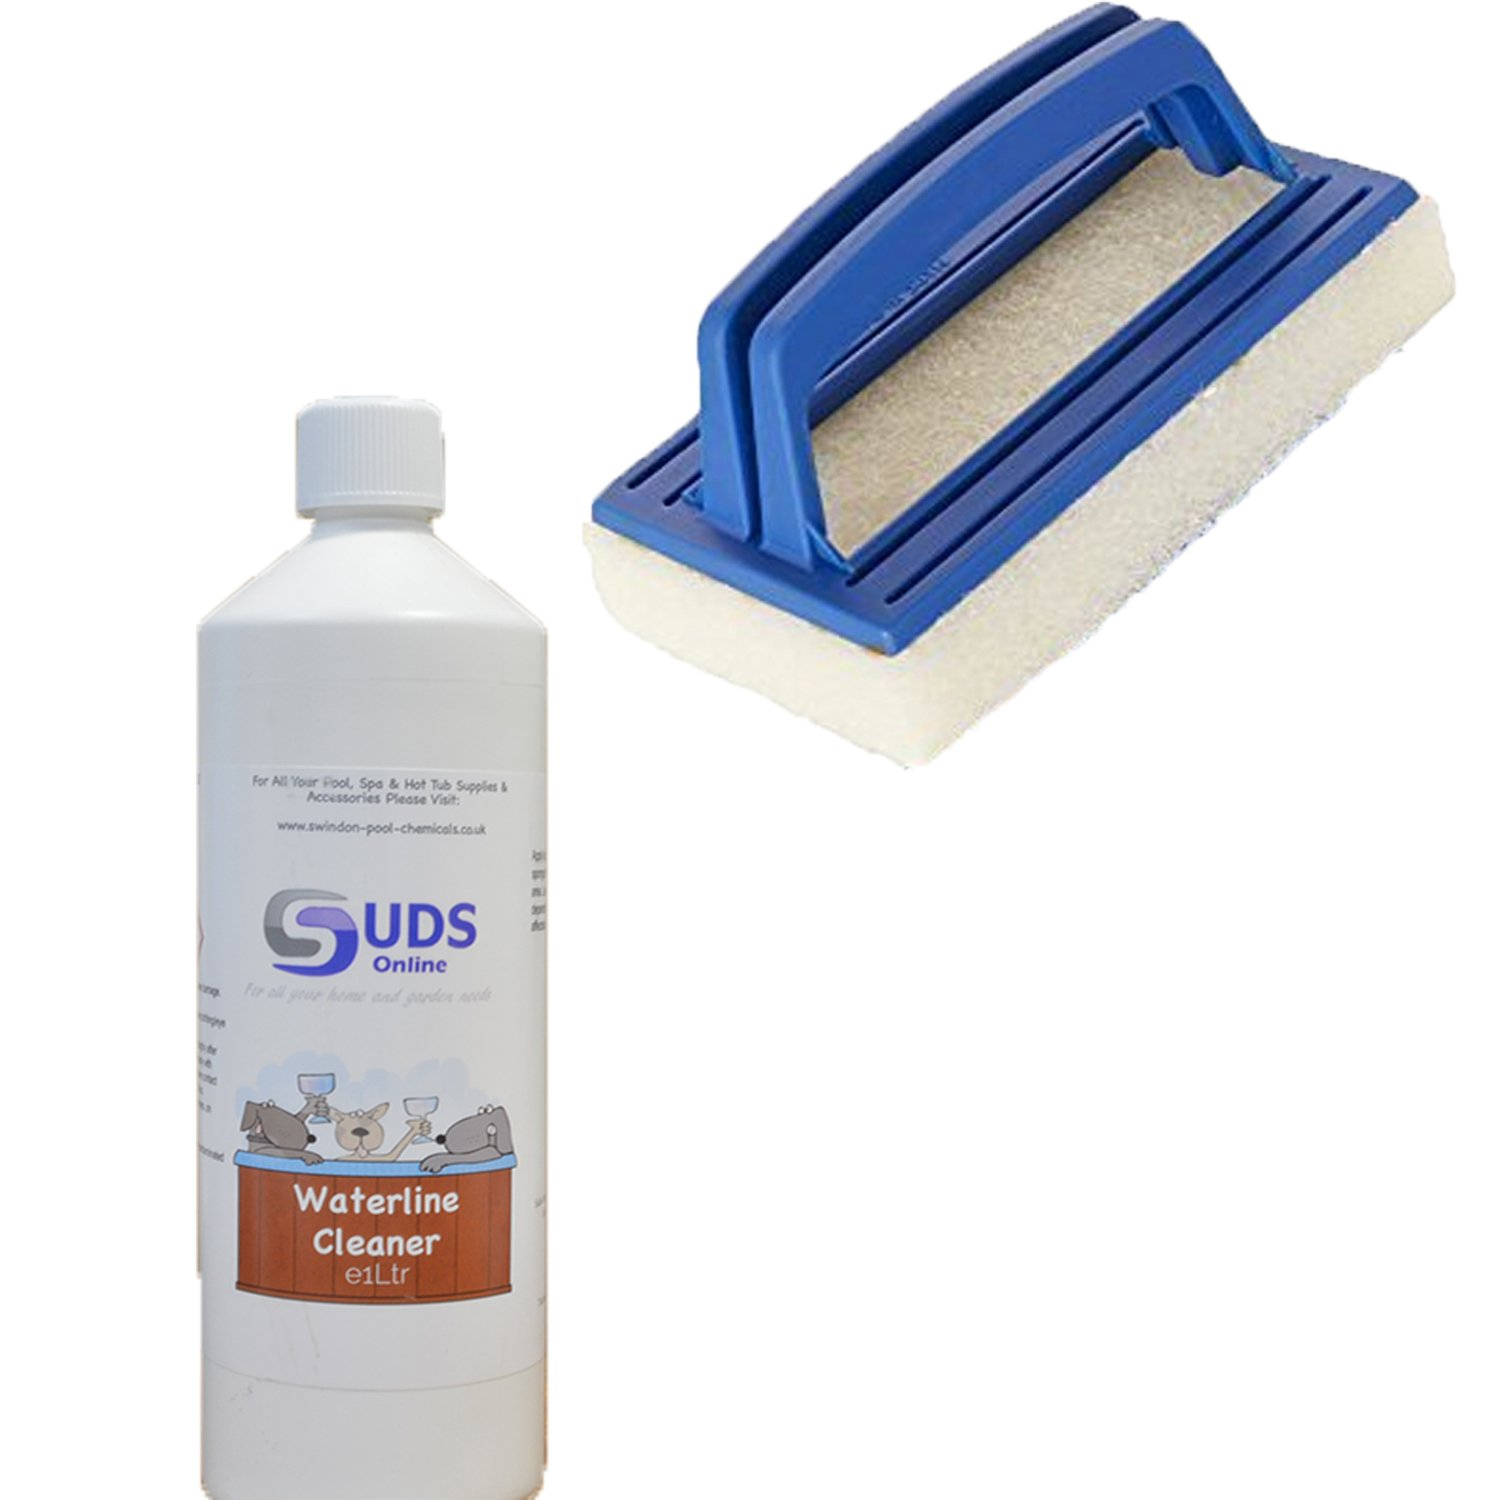 1L Spa Surface Cleaner Hot tub Waterline Spas Scum & Oil Remover With Brush SUDS-ONLINE